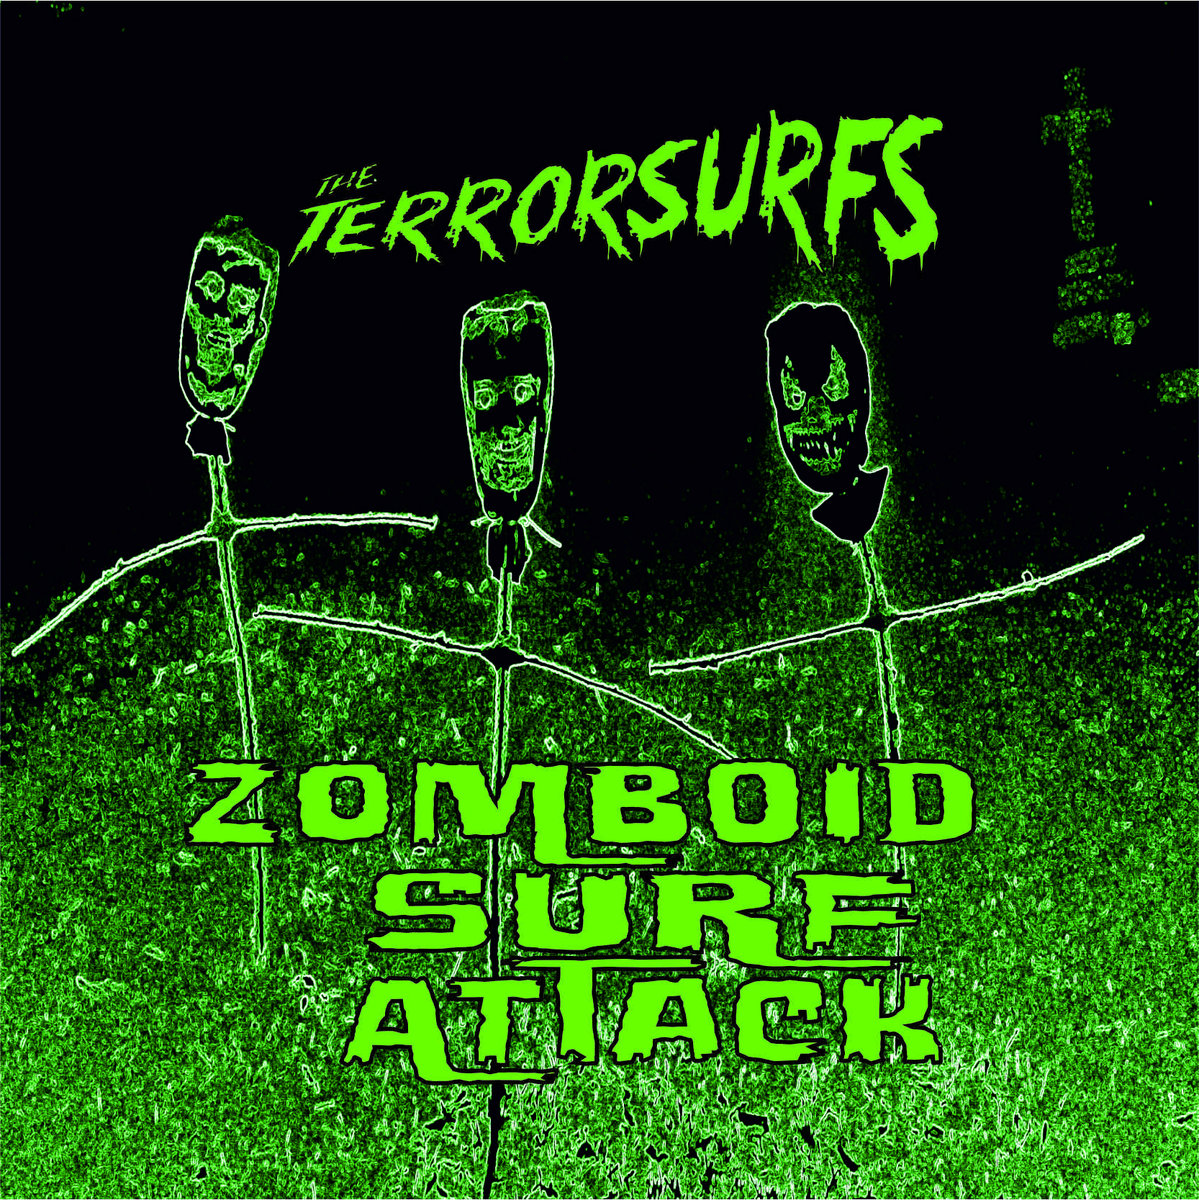 SRW013 The Terrorsurfs - Zomboid Surf Attack Image